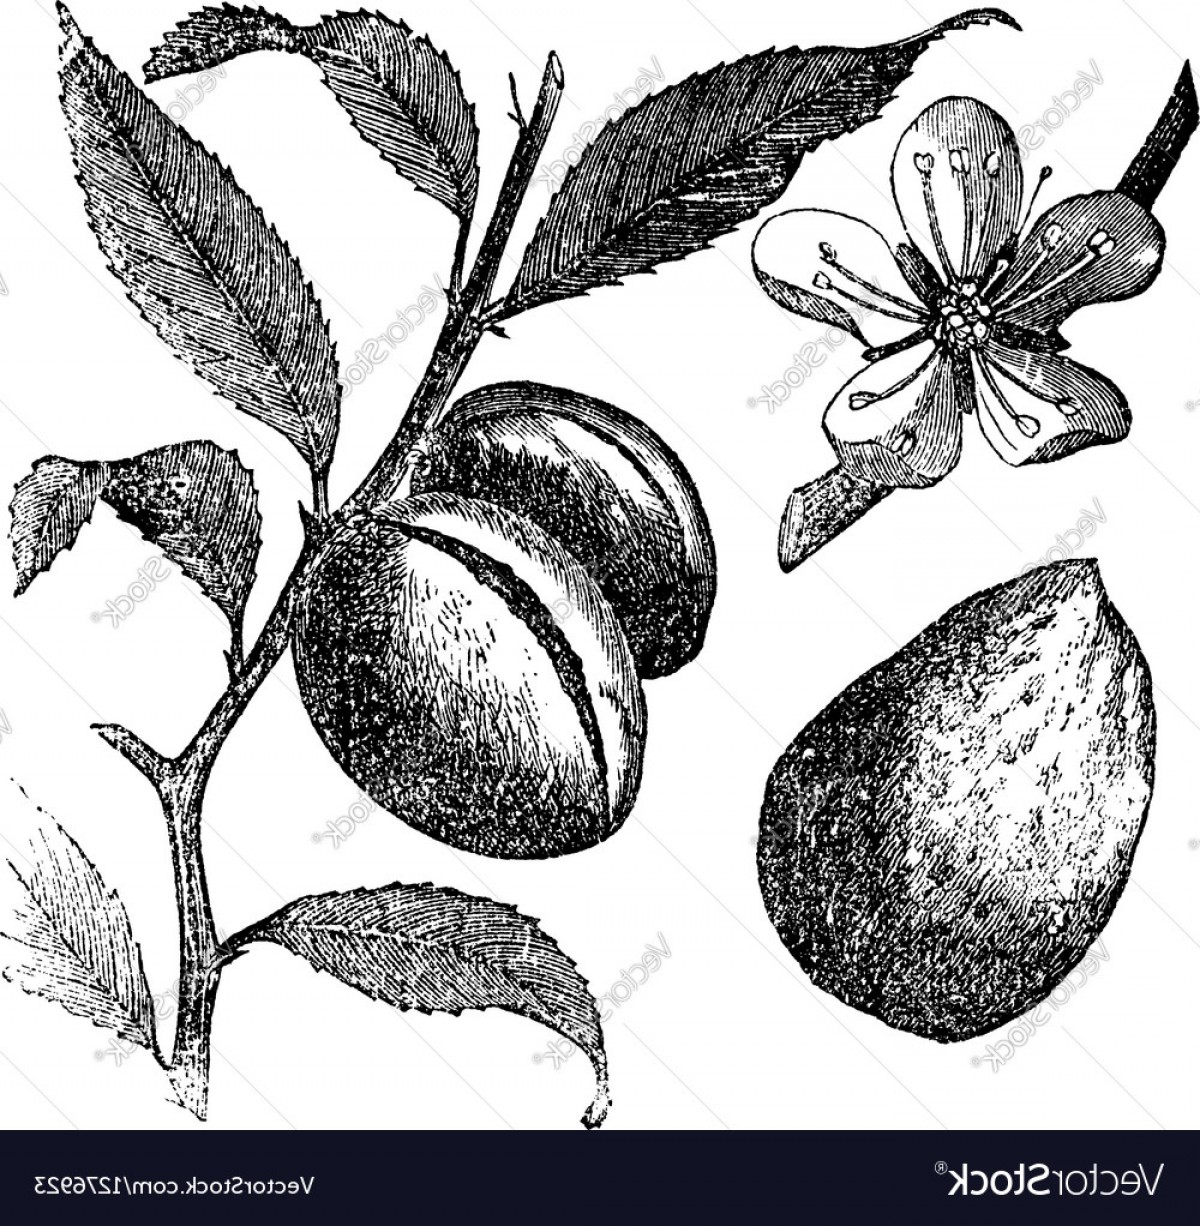 Almond Tree Vector: Almond Tree Vintage Engraving Vector